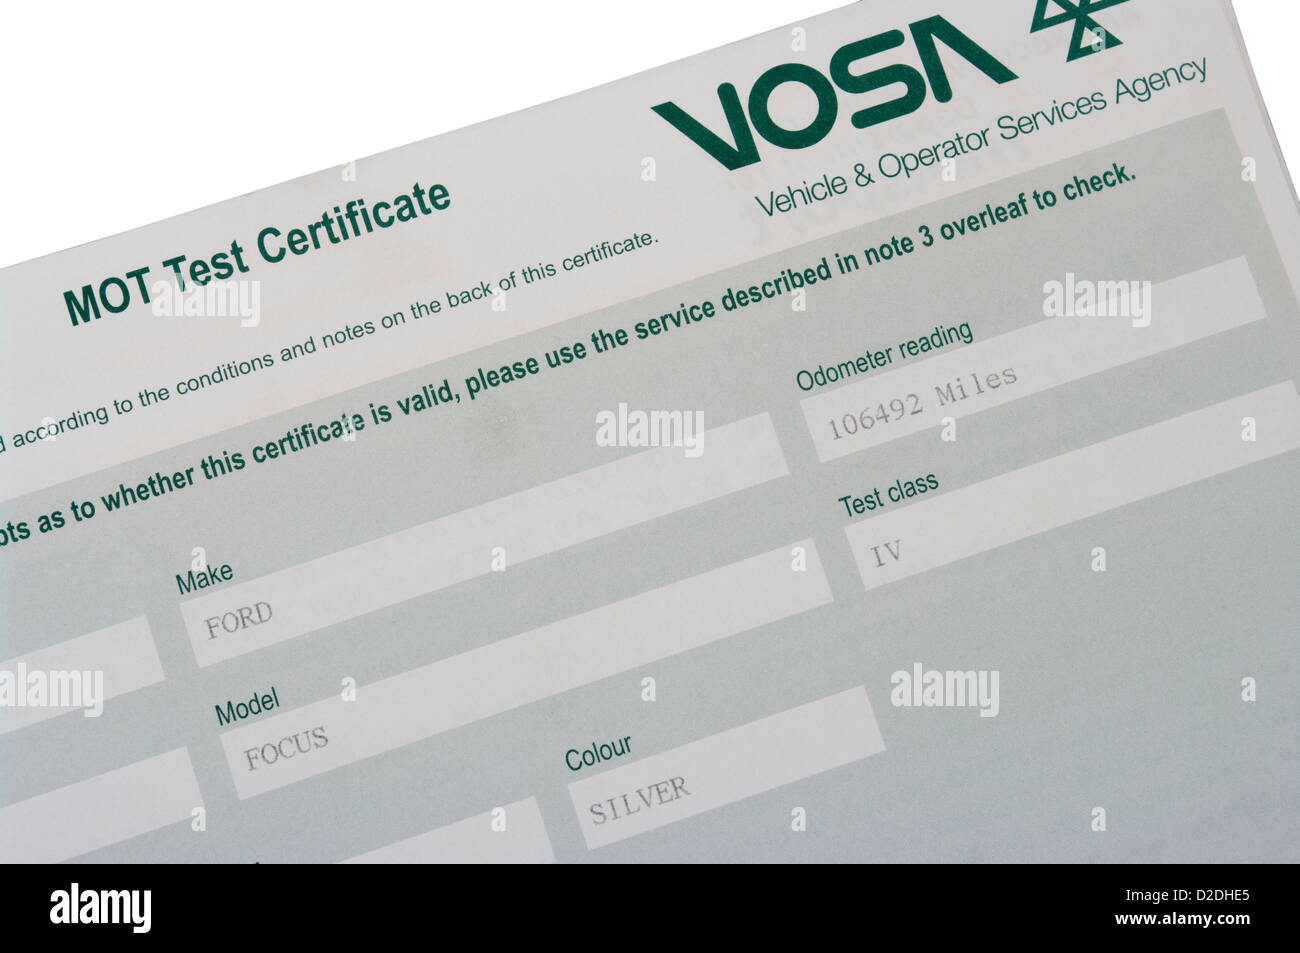 Vehicle And Operator Services Agency MOT Test Certificate - Stock Image